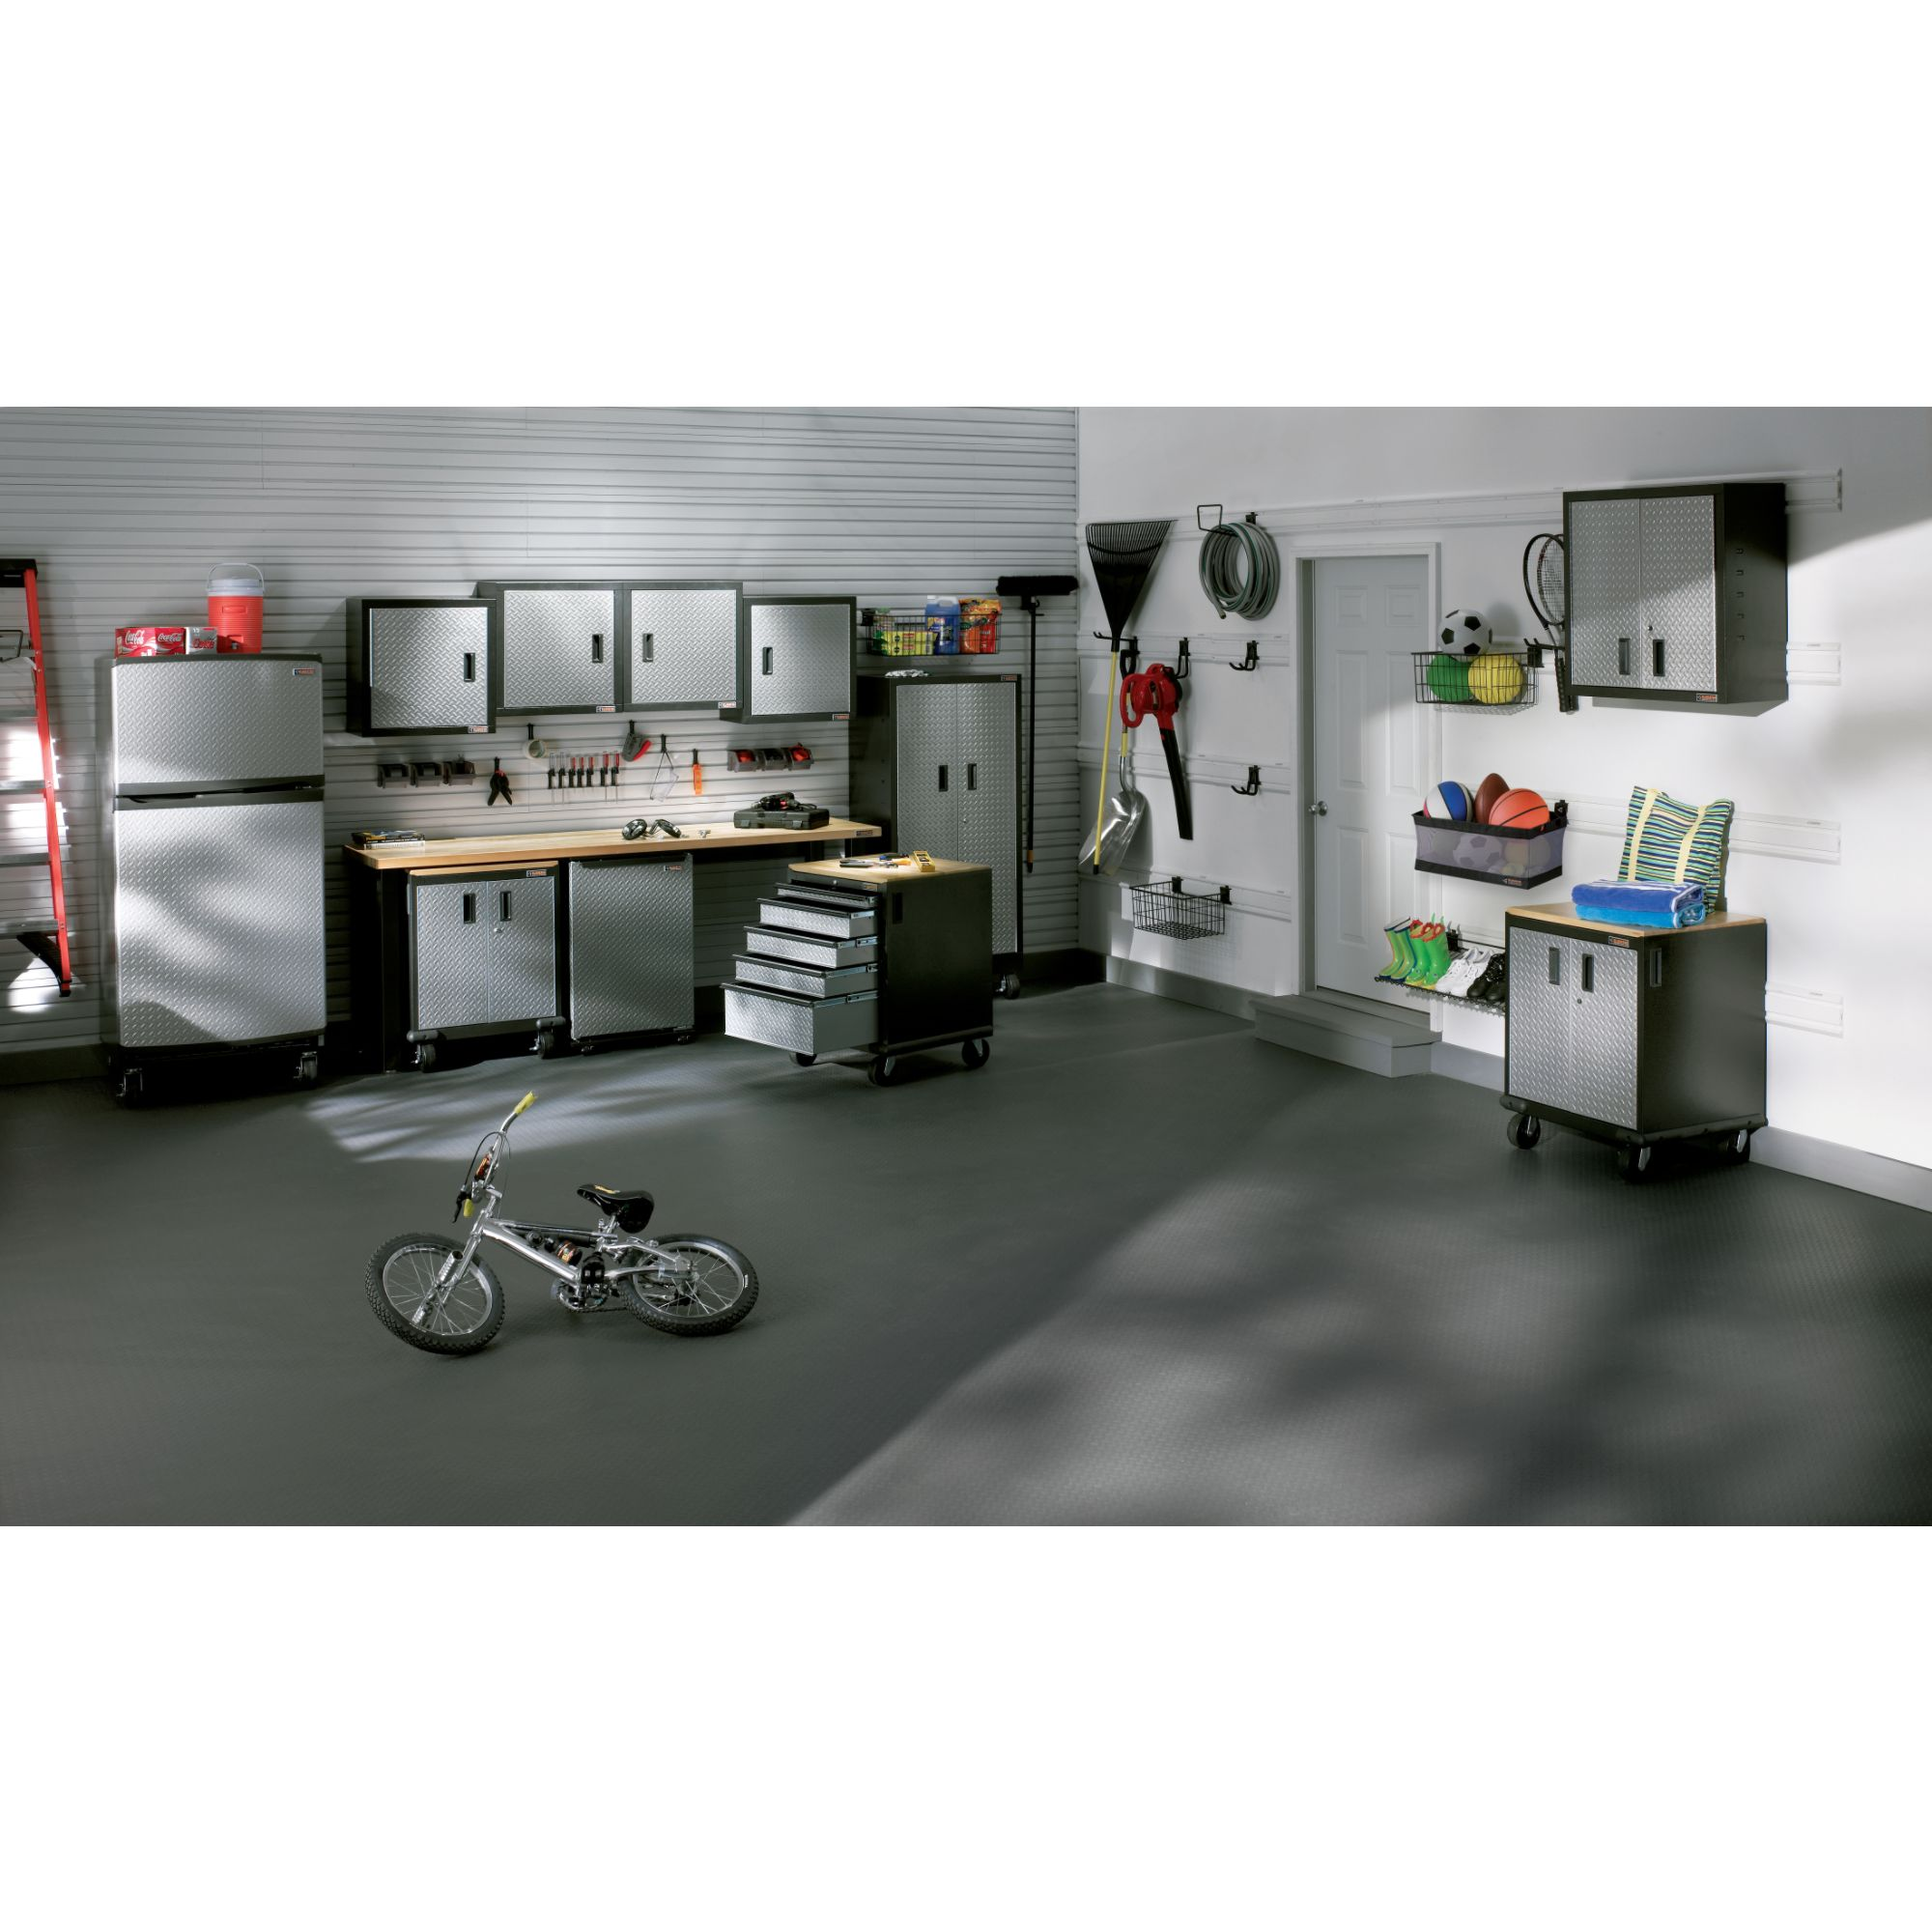 Gladiator 48-Pack Silver Garage Floor Tile